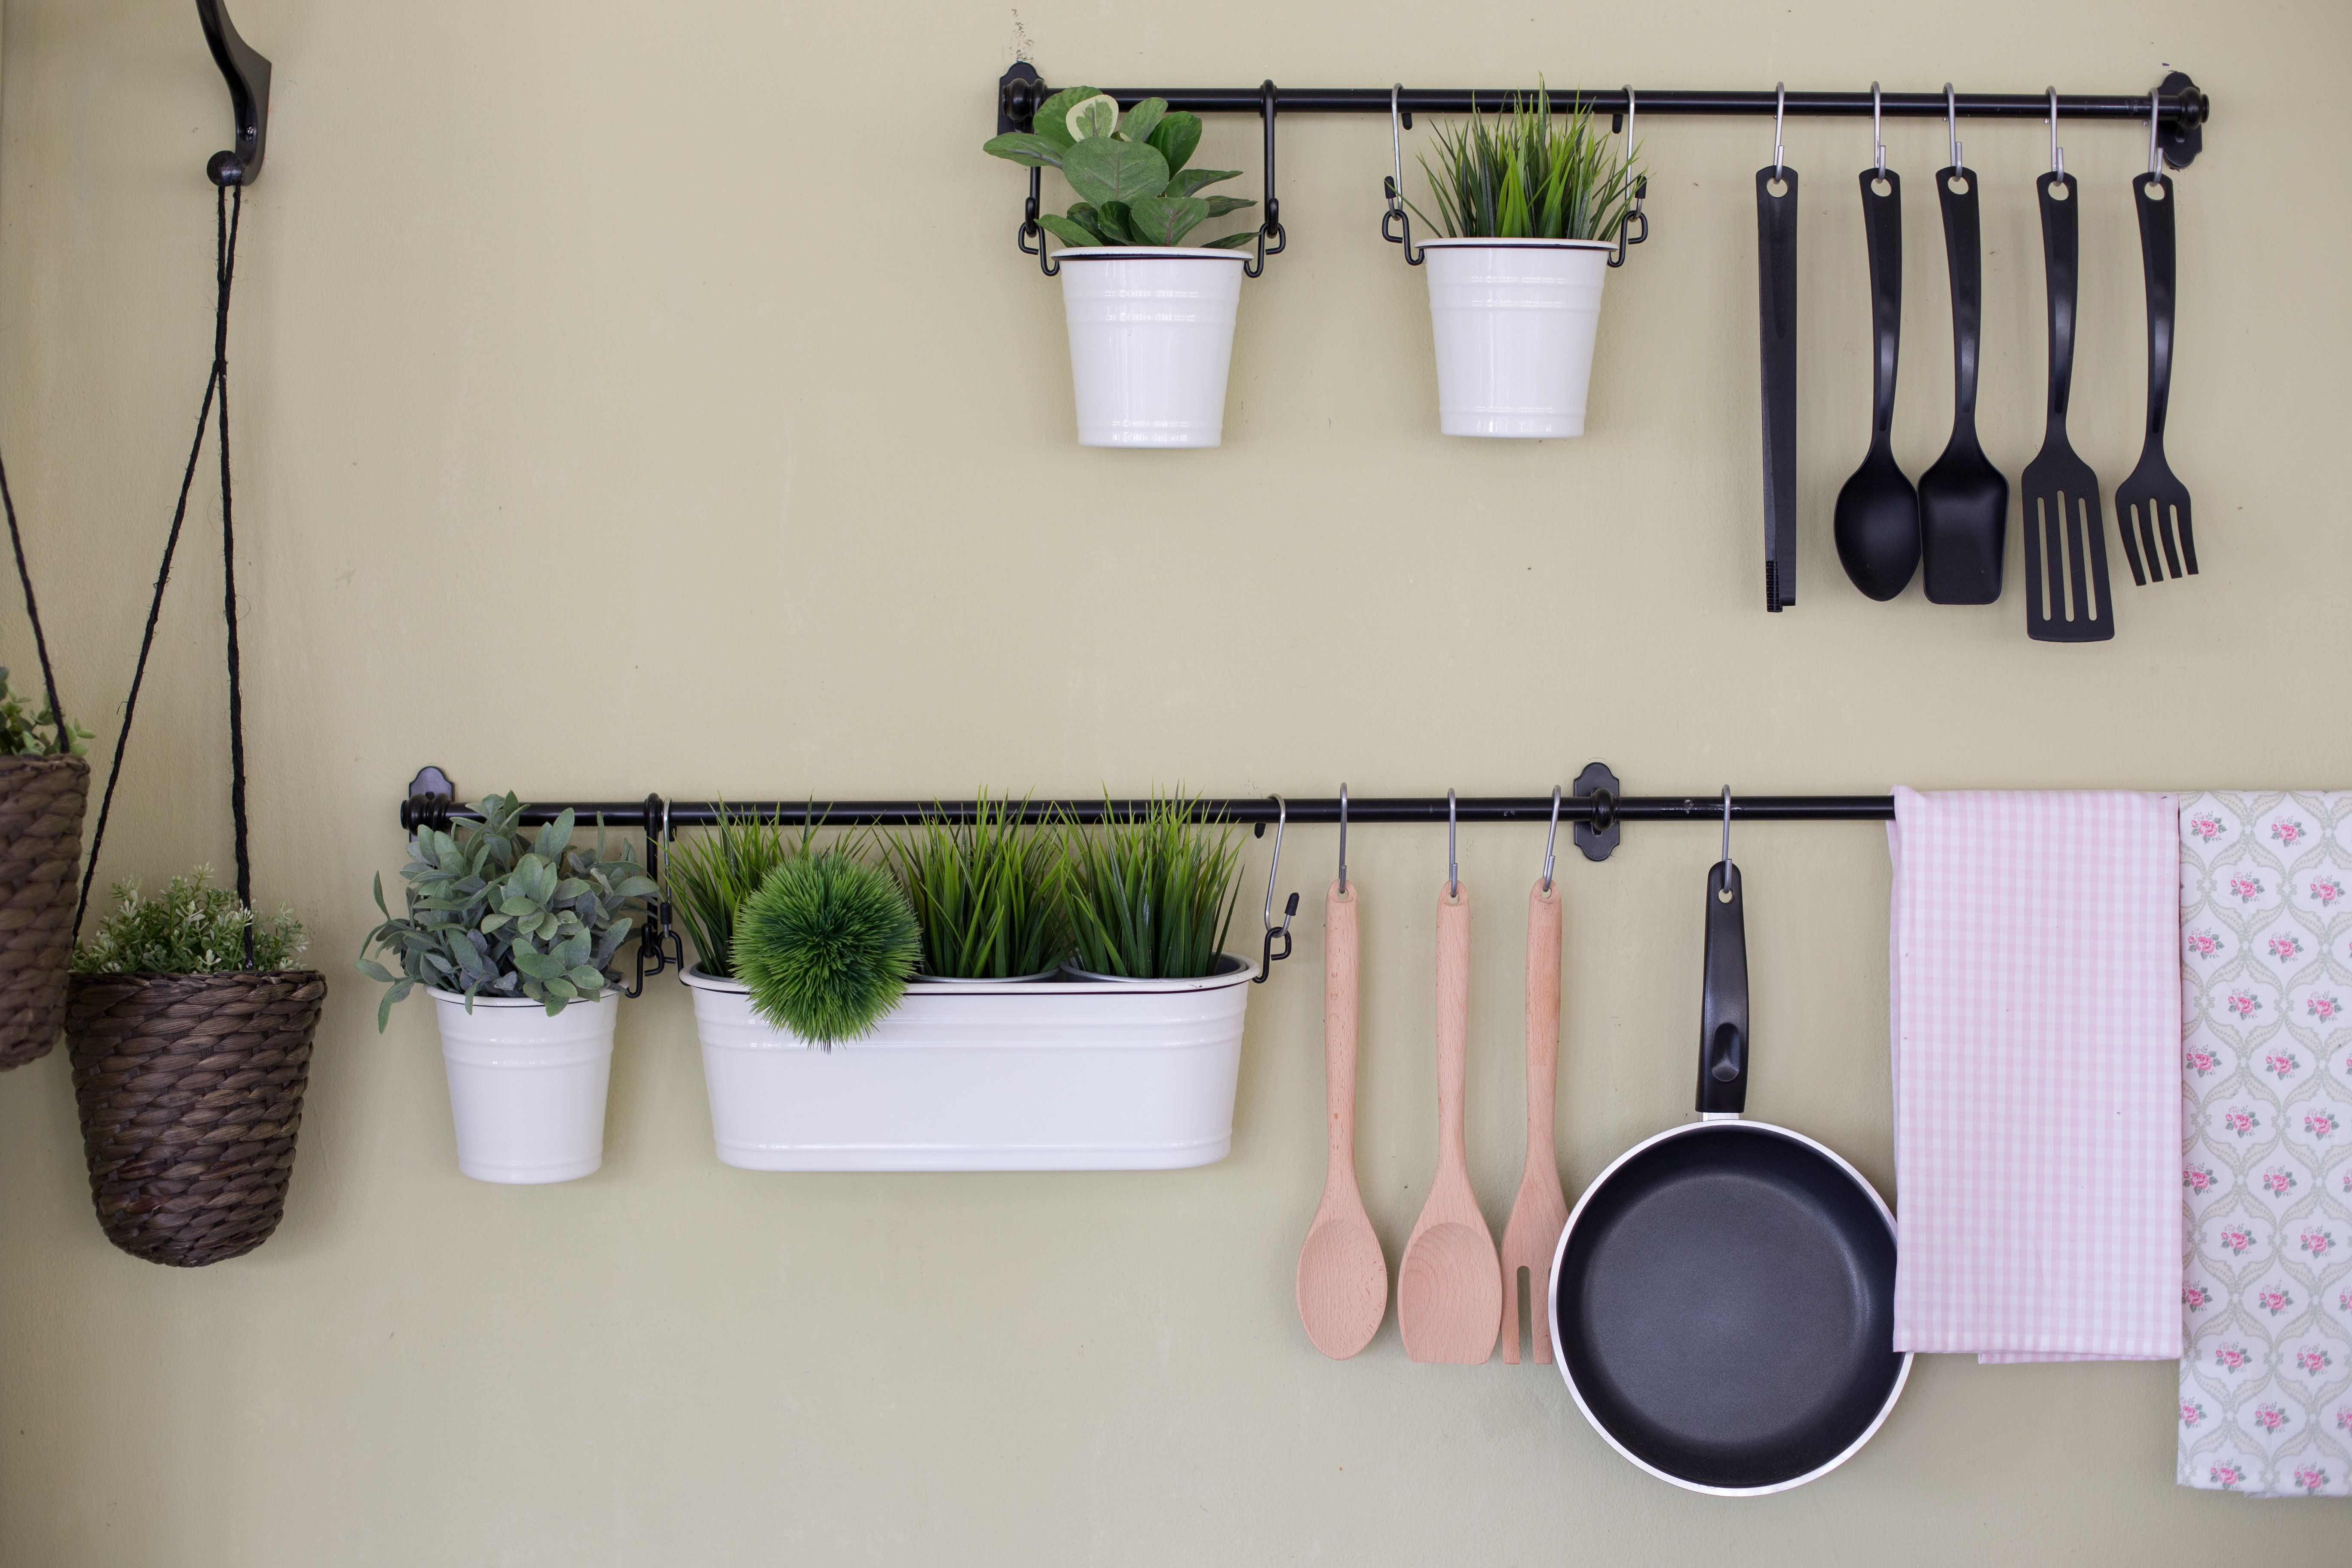 Kitchenware and tree  hanging on the wall.